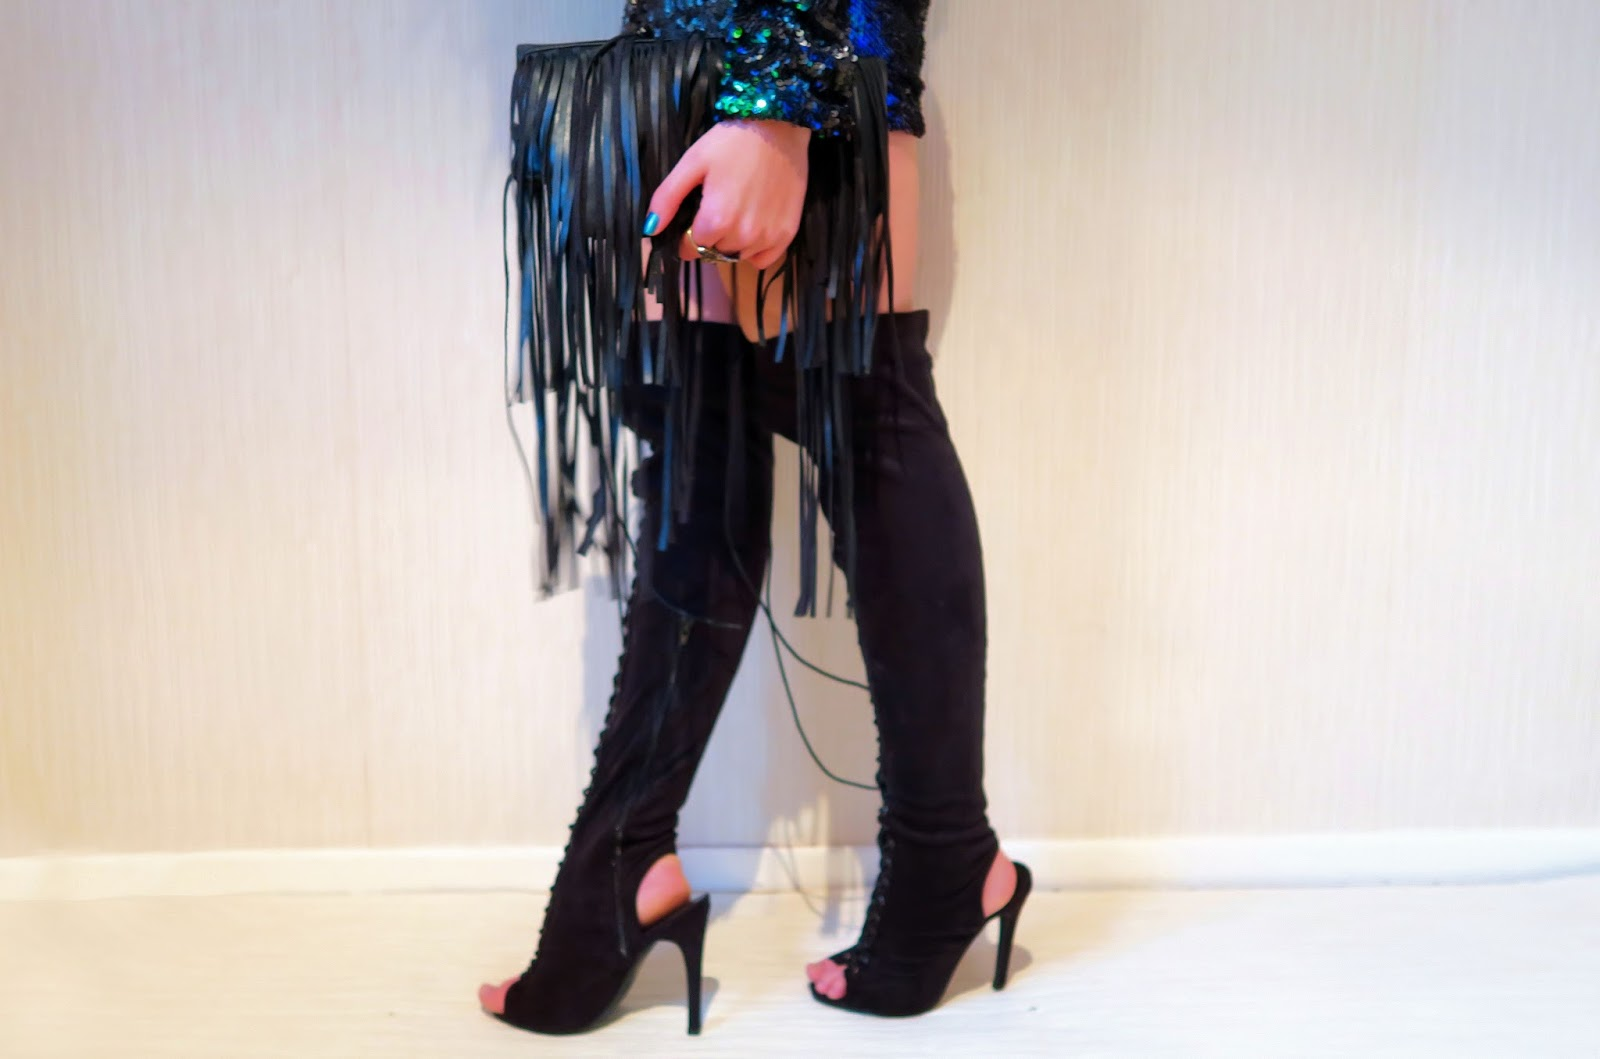 thigh-high-laceup-boots-style @ hayleyeszti